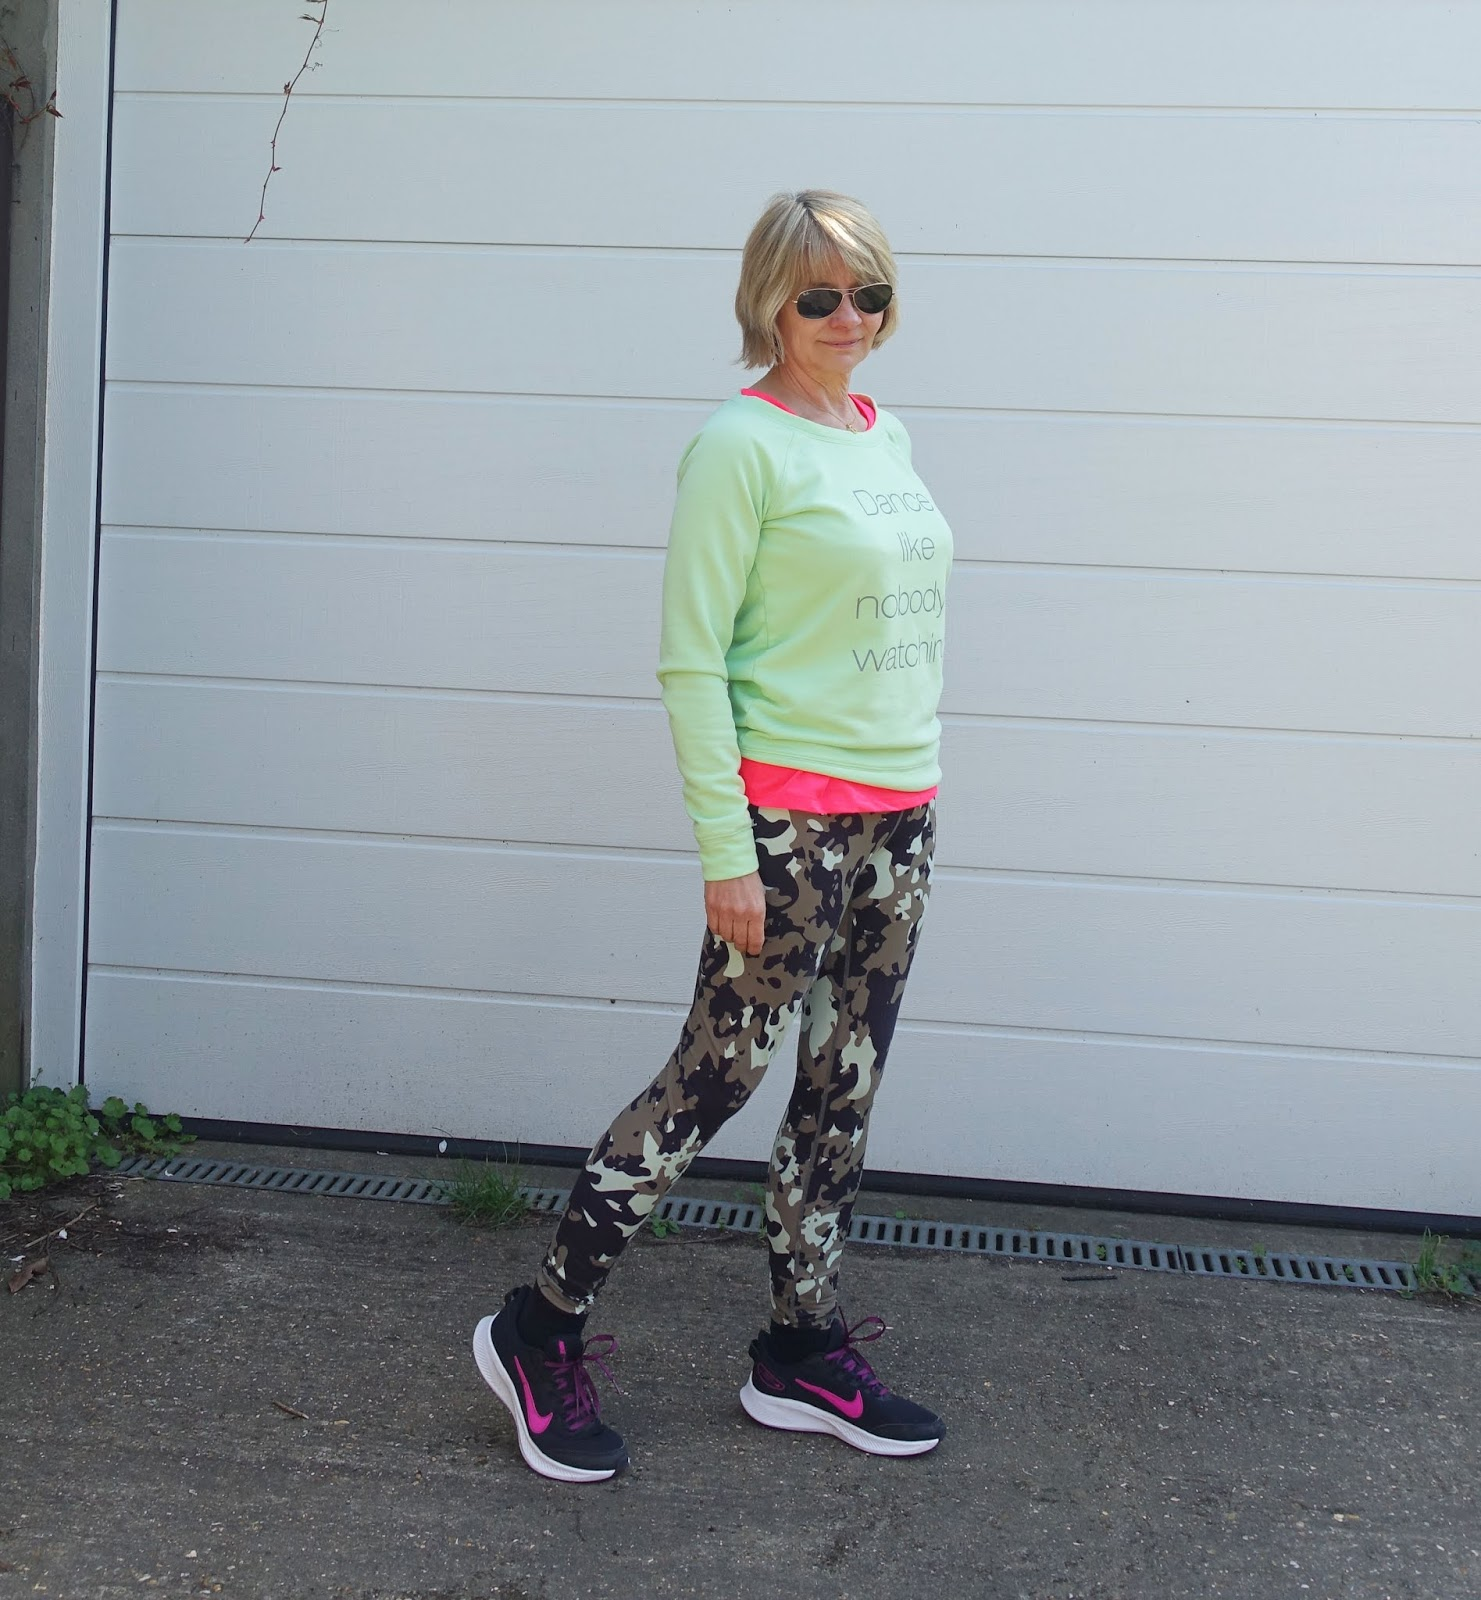 For the April Style Not Age Challenge Gail Hanlon from Is This Mutton is sporting Comfy Casuals - light green sweatshirt and camo leggings